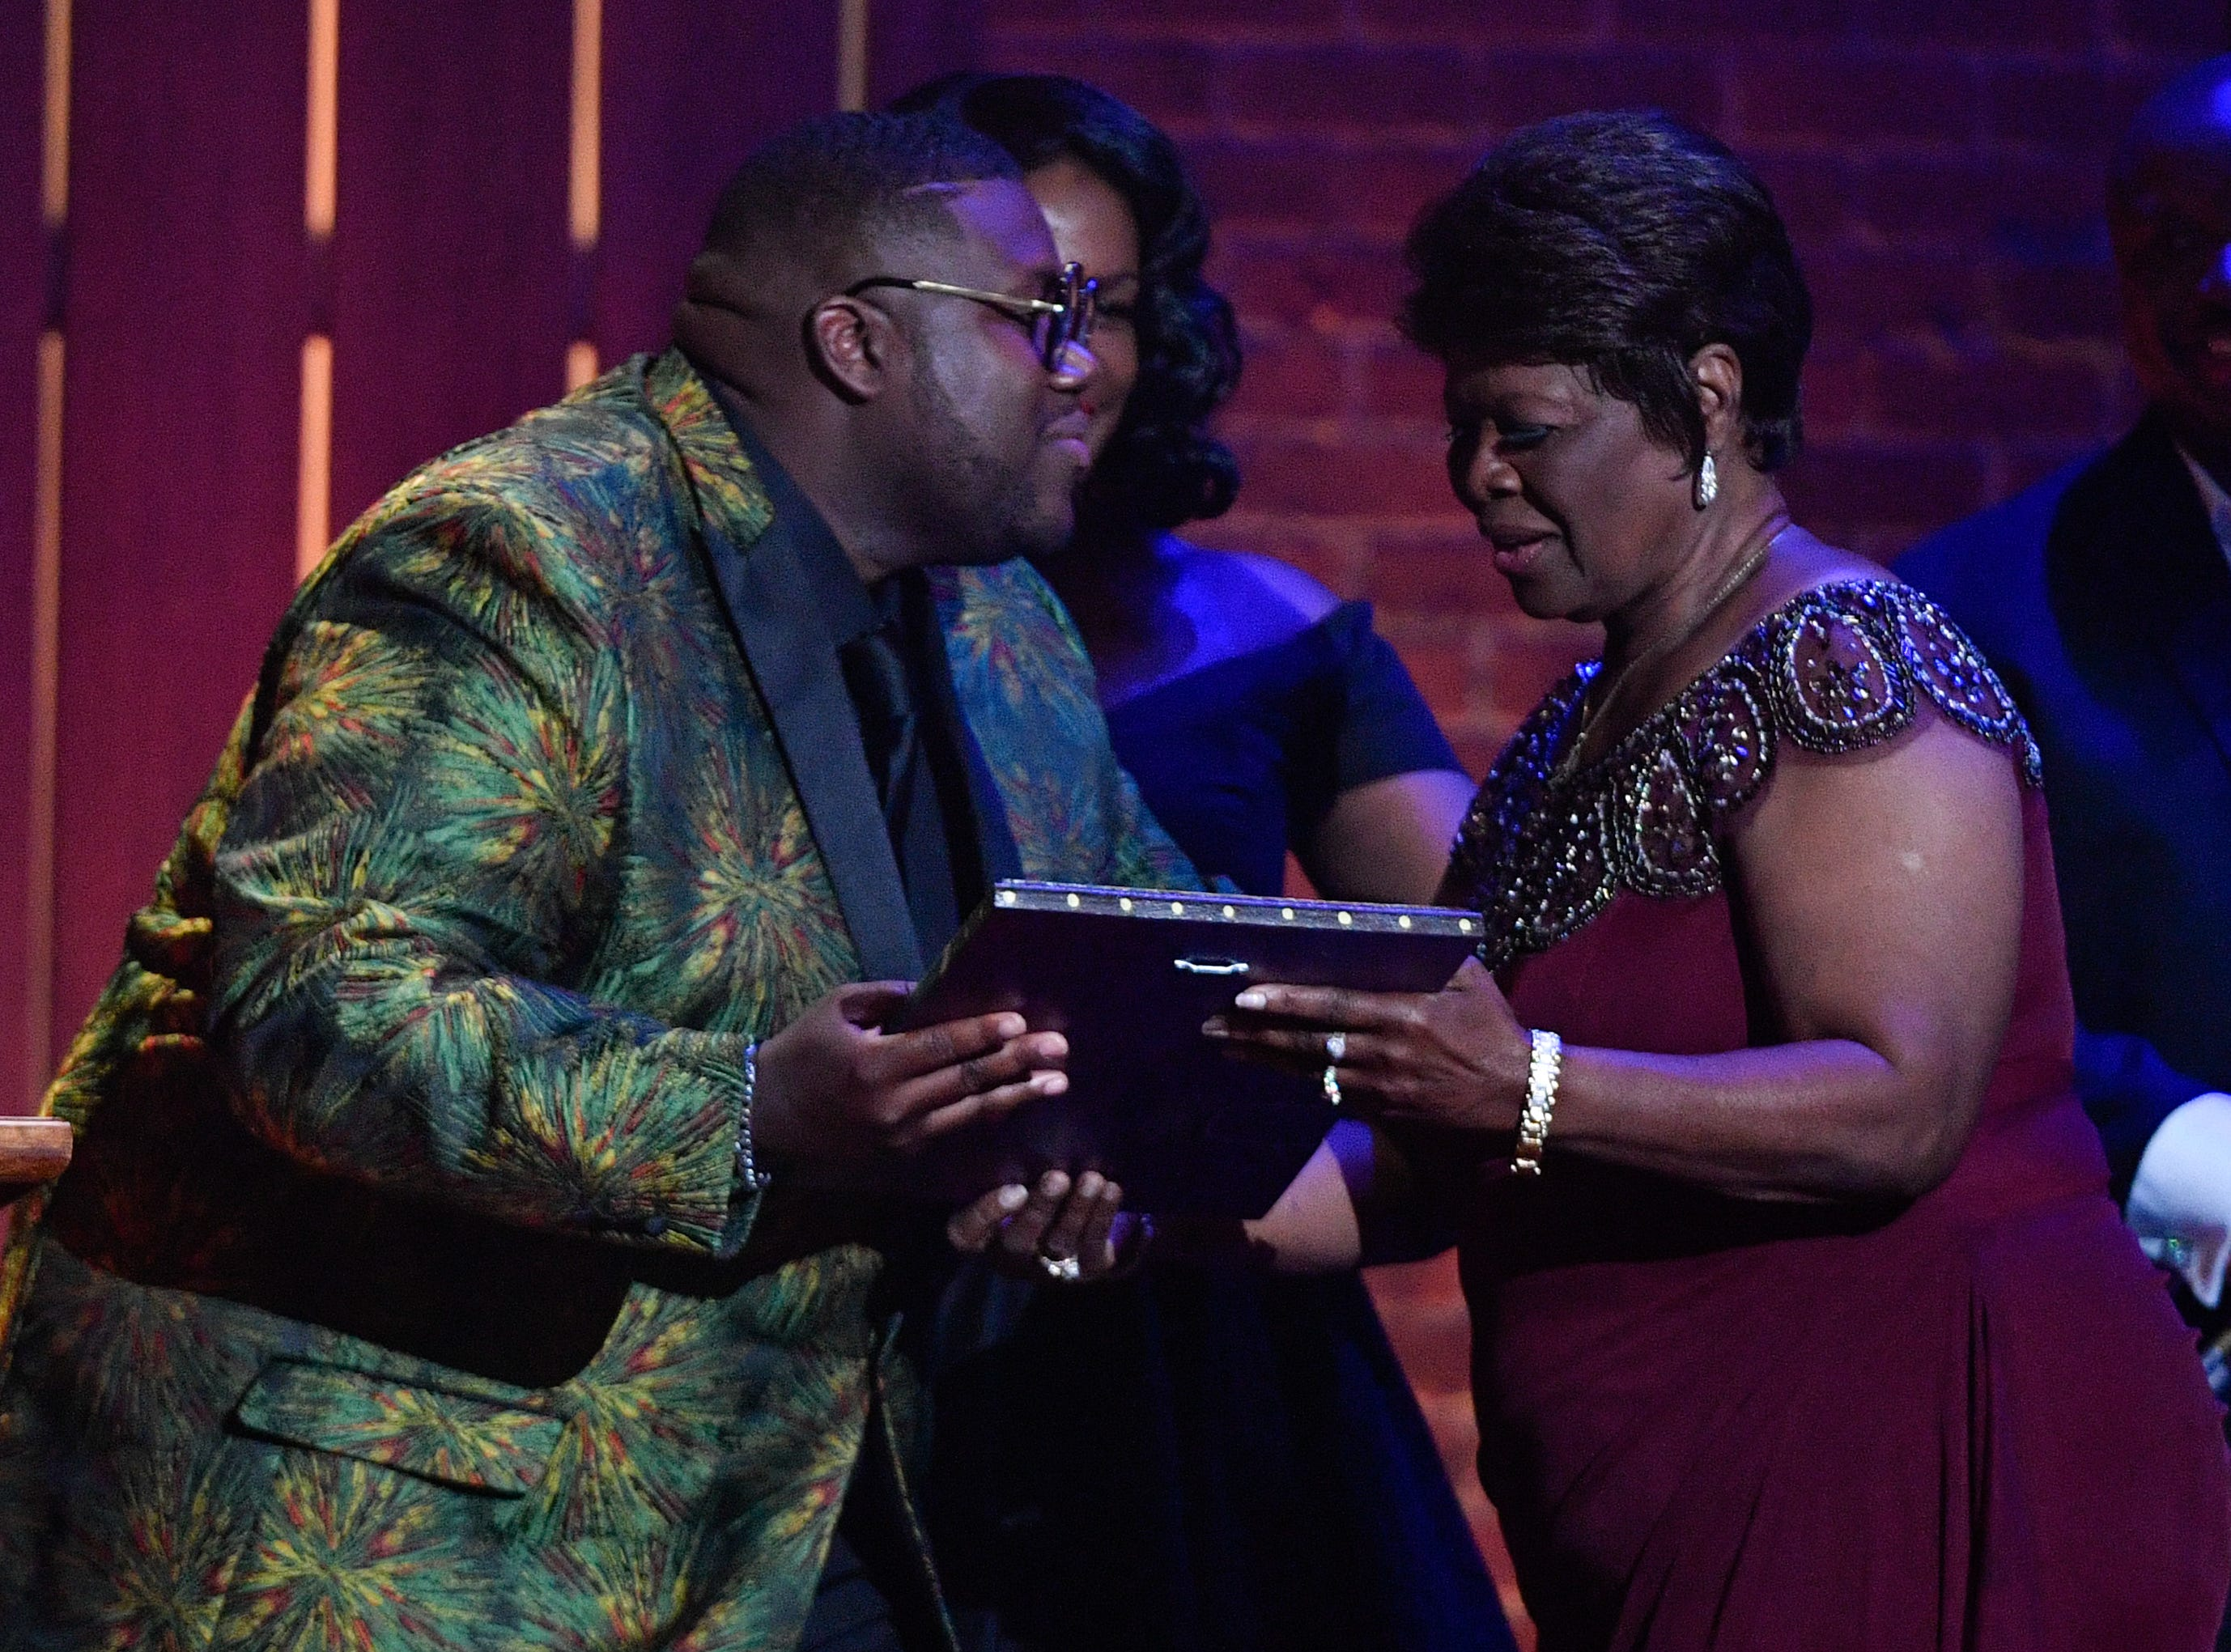 The War and Treaty present Irma Thomas with the Lifetime Performance Award performs during the 2018 Americana Honors and Awards show at the Ryman Auditorium in Nashville, Tenn., Wednesday, Sept. 12, 2018.